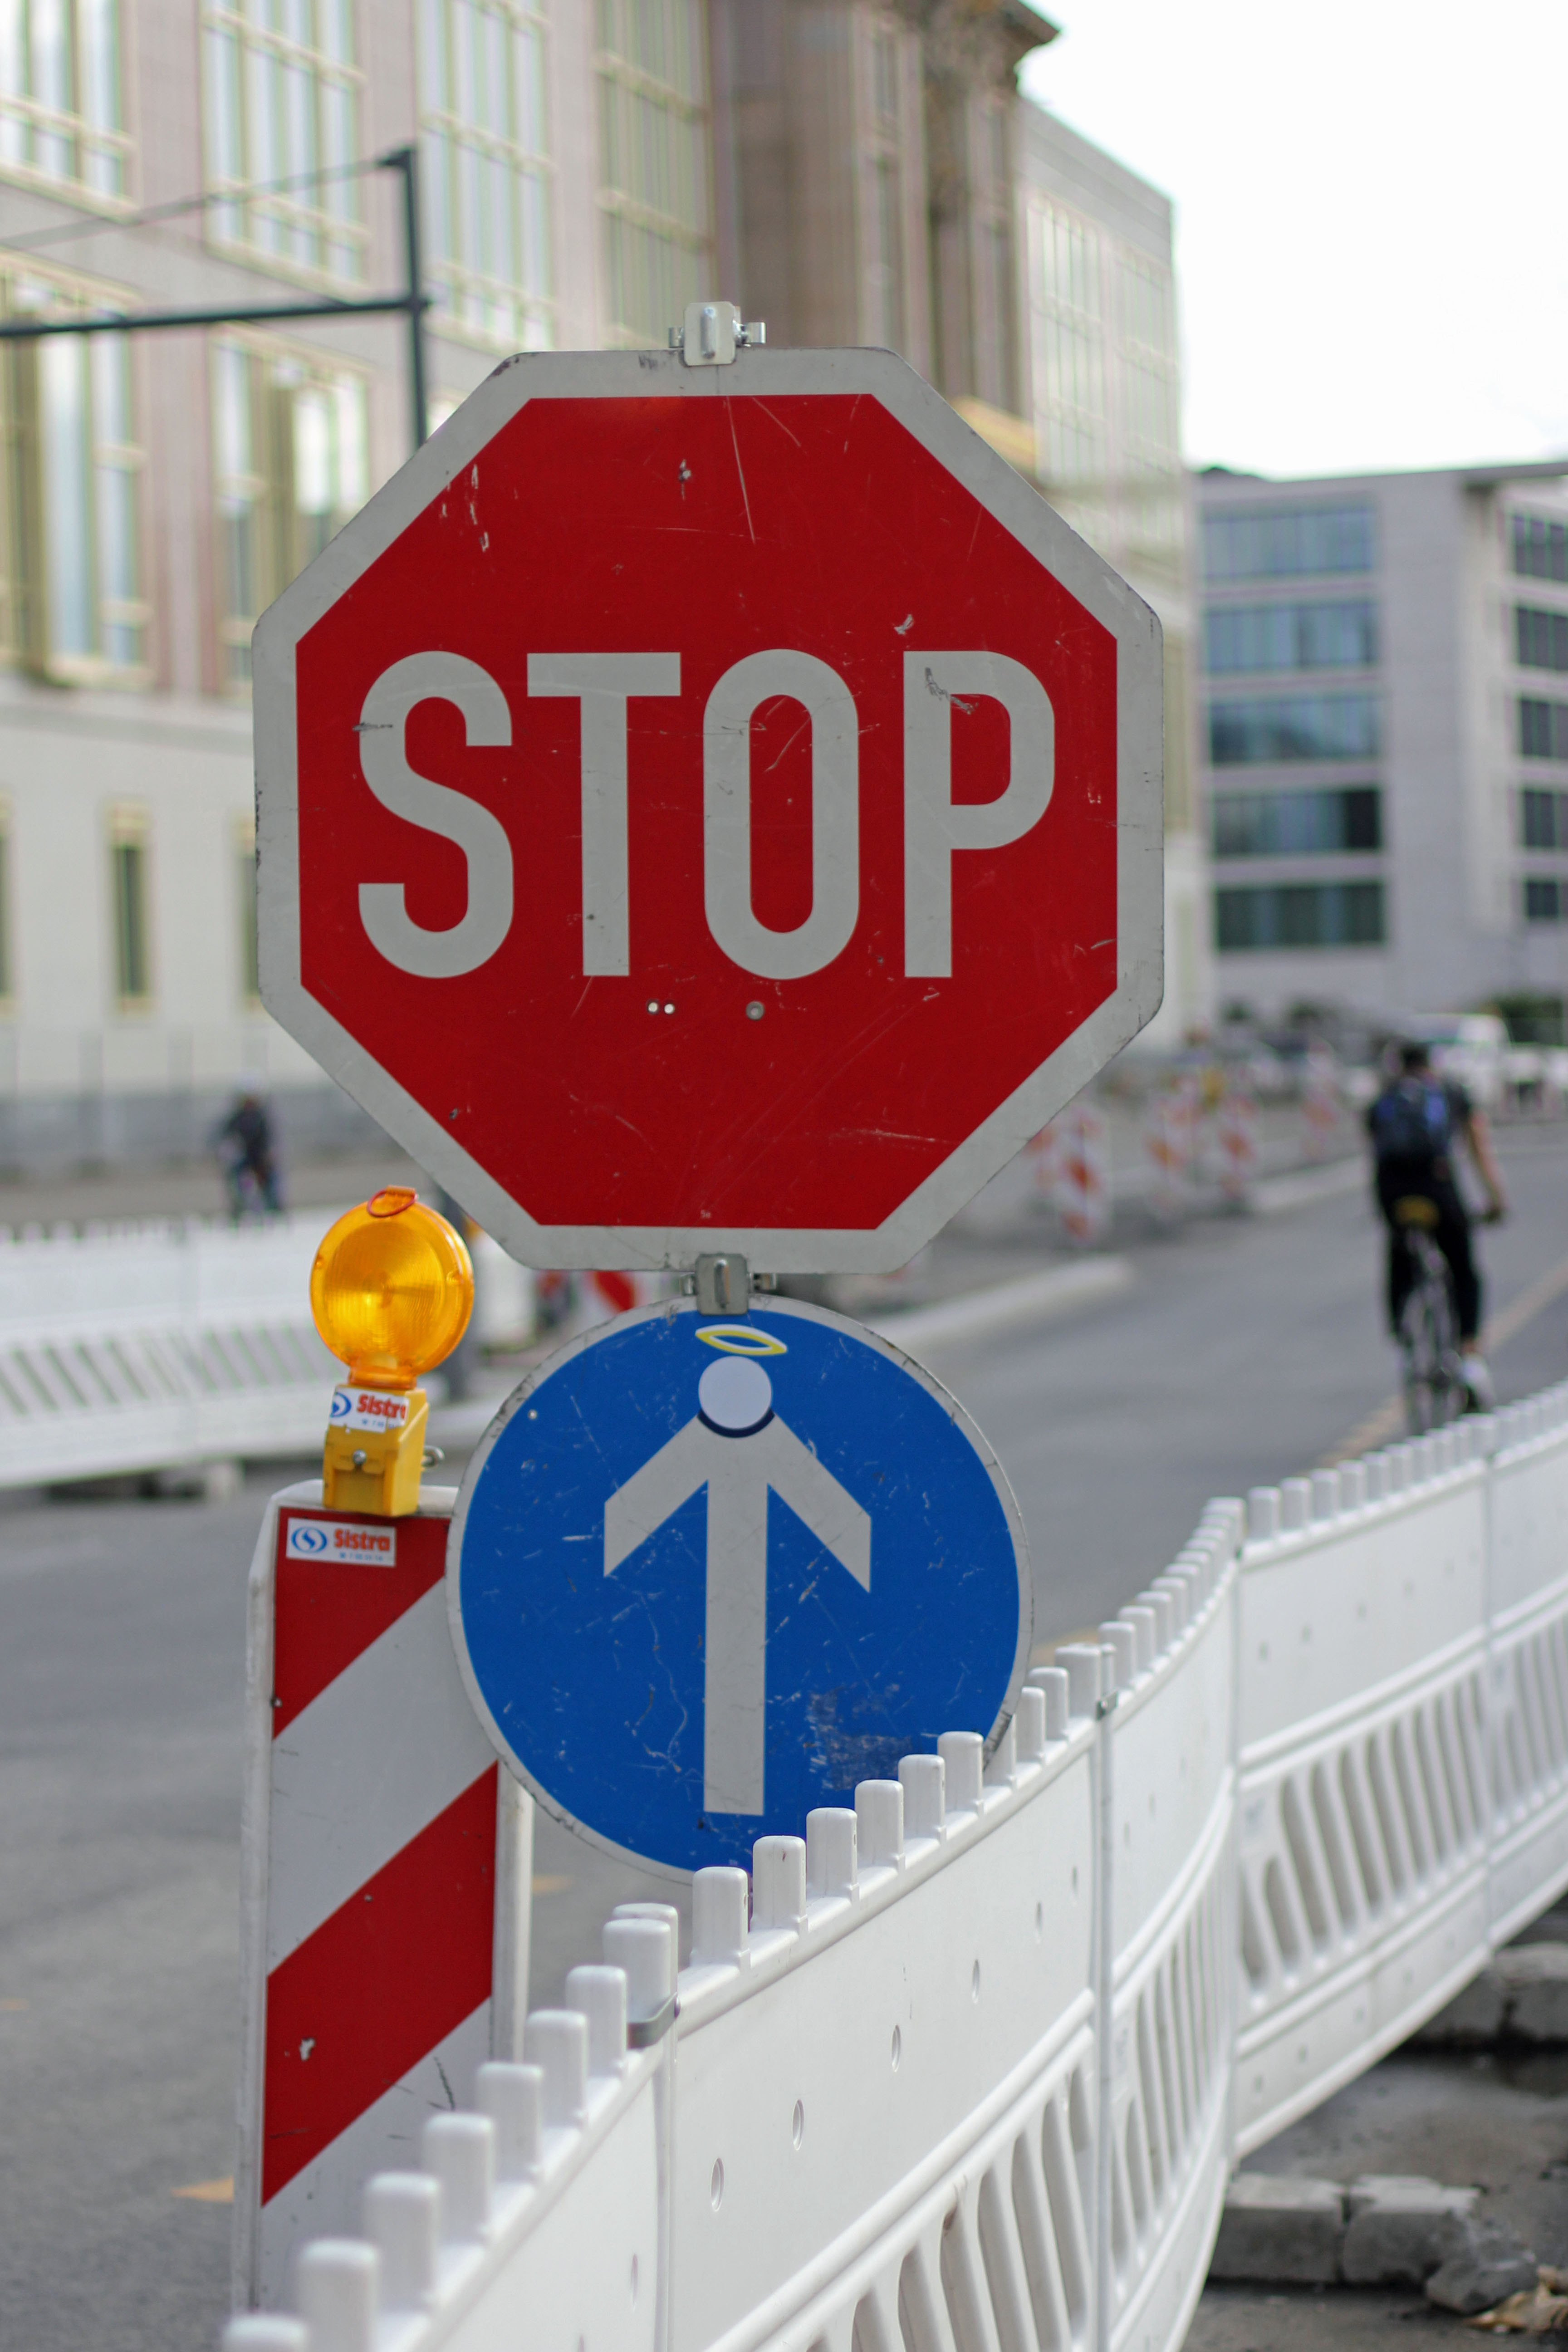 STOP Angel - Street Art by CLET (Clet Abraham) on a One Way street sign in Berlin